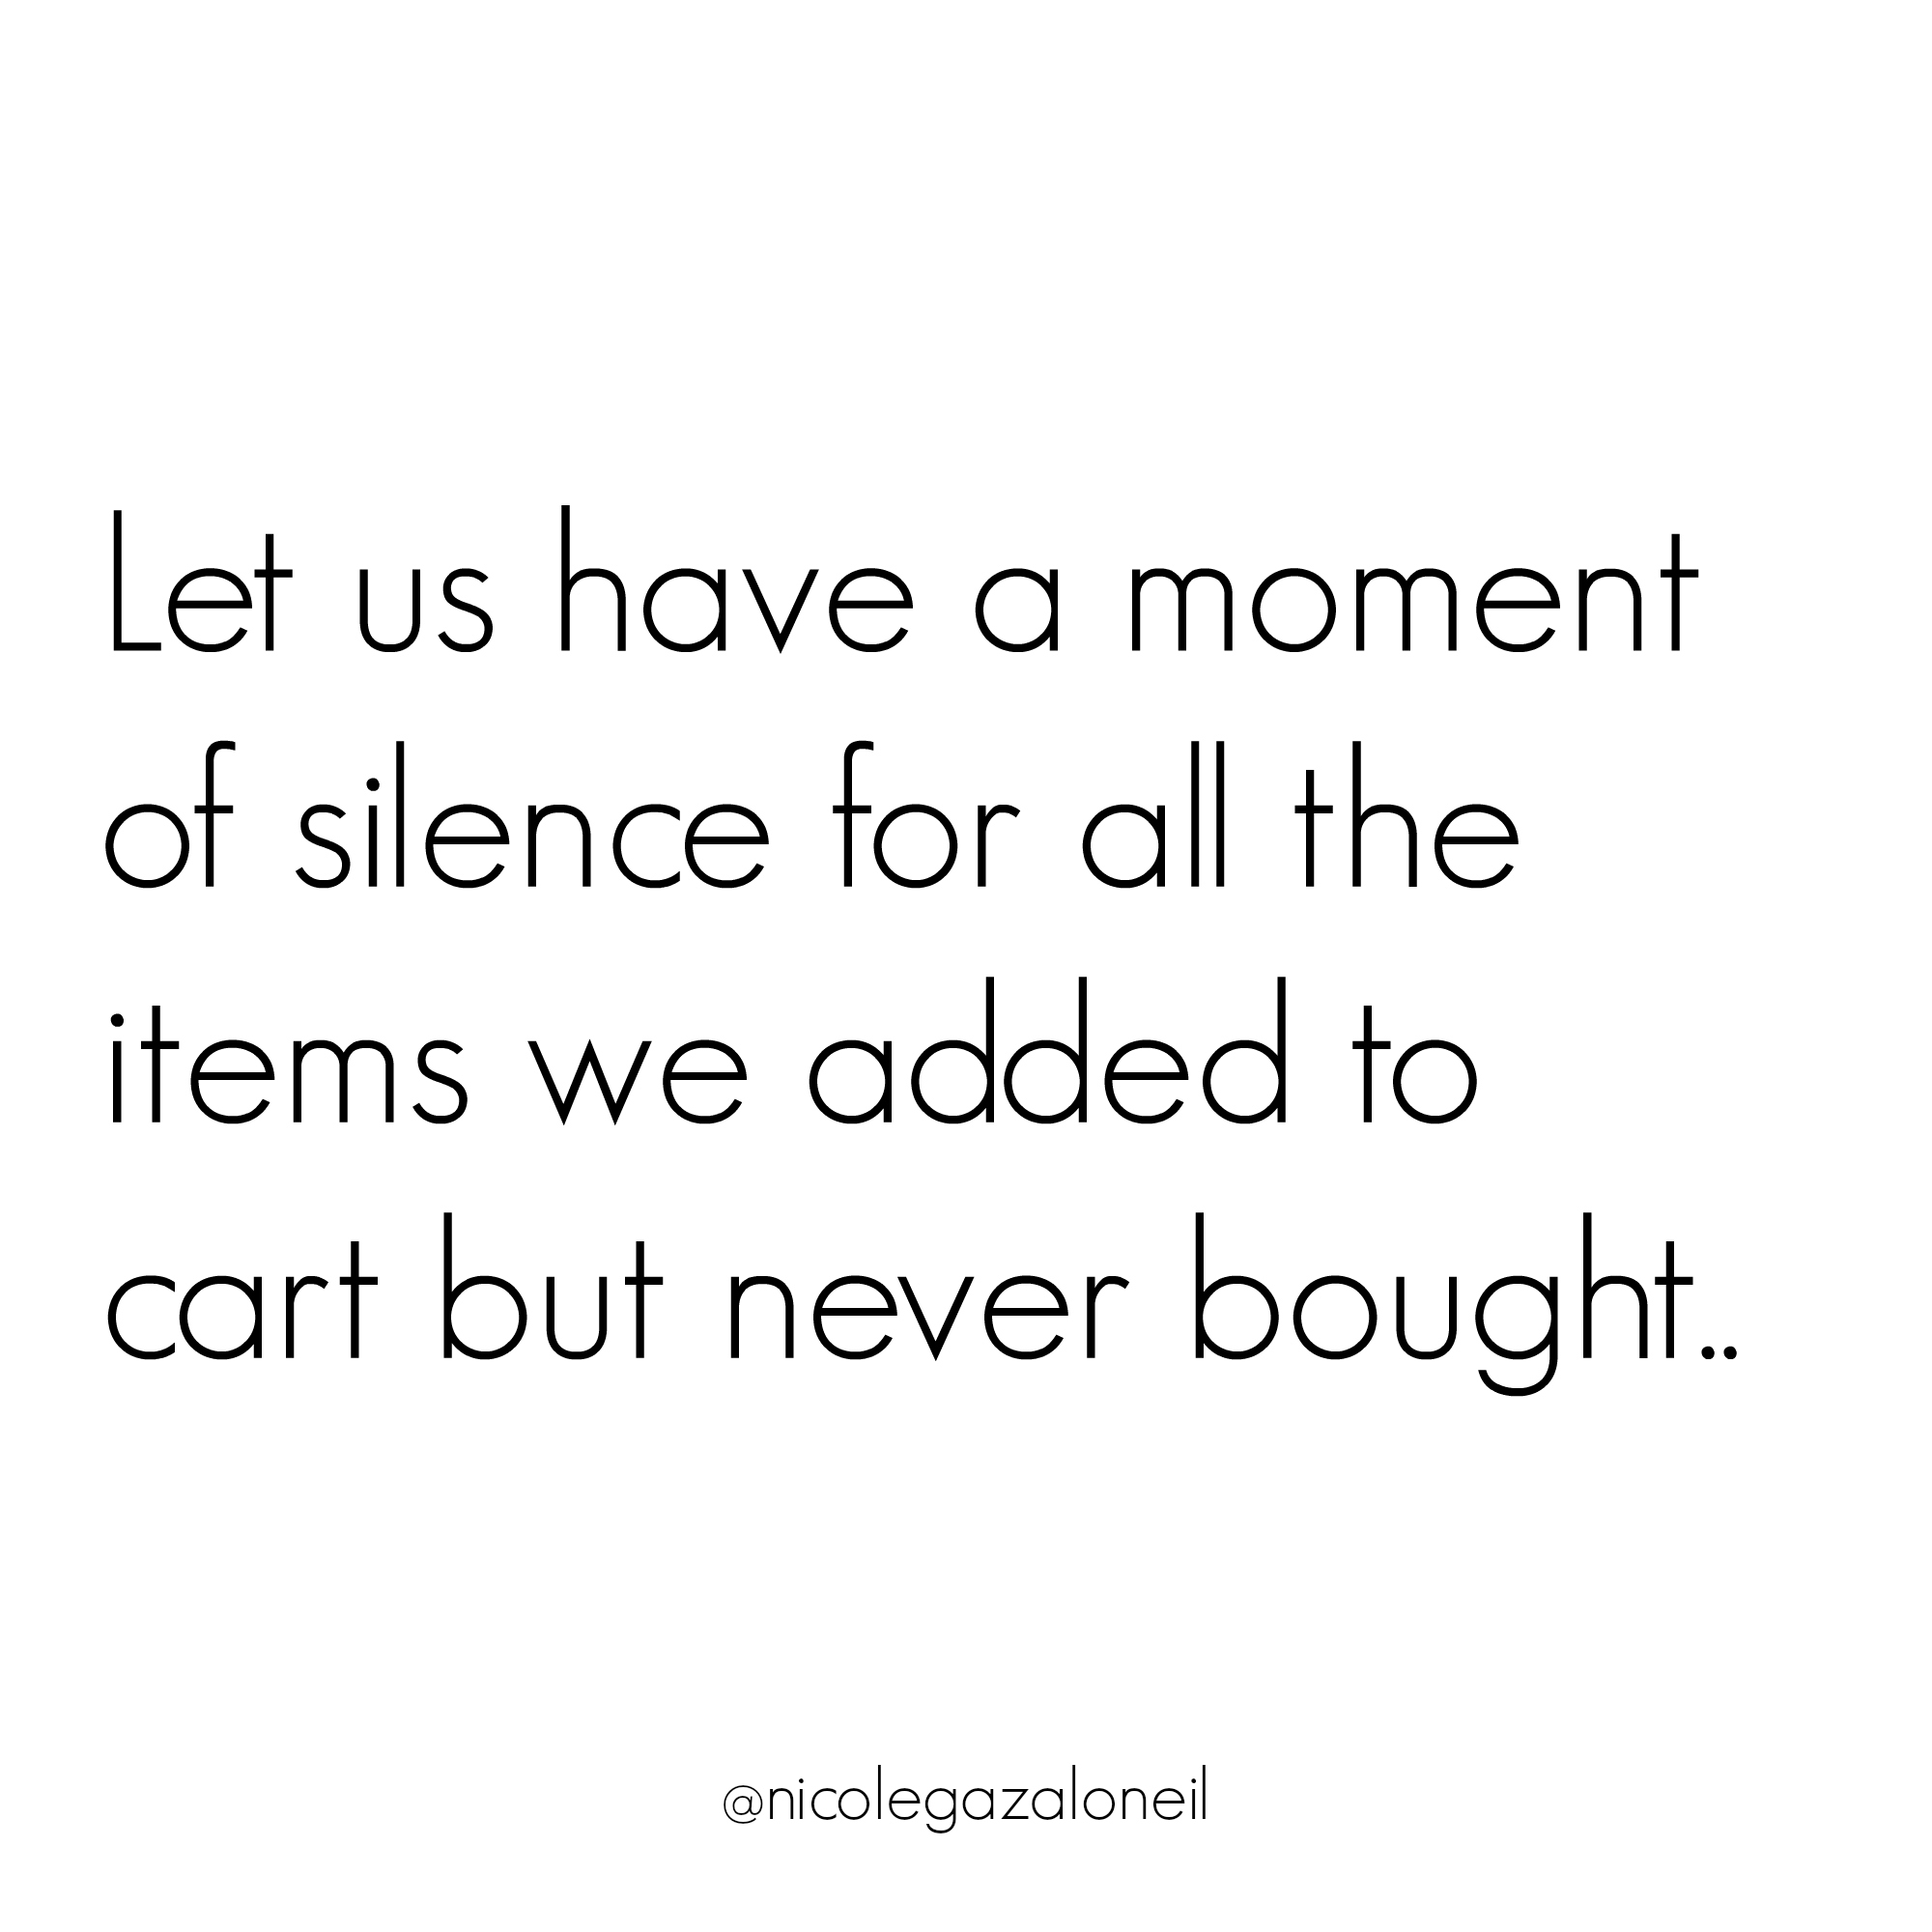 Let us have a moment of silence for all the items we added to cart but never bought